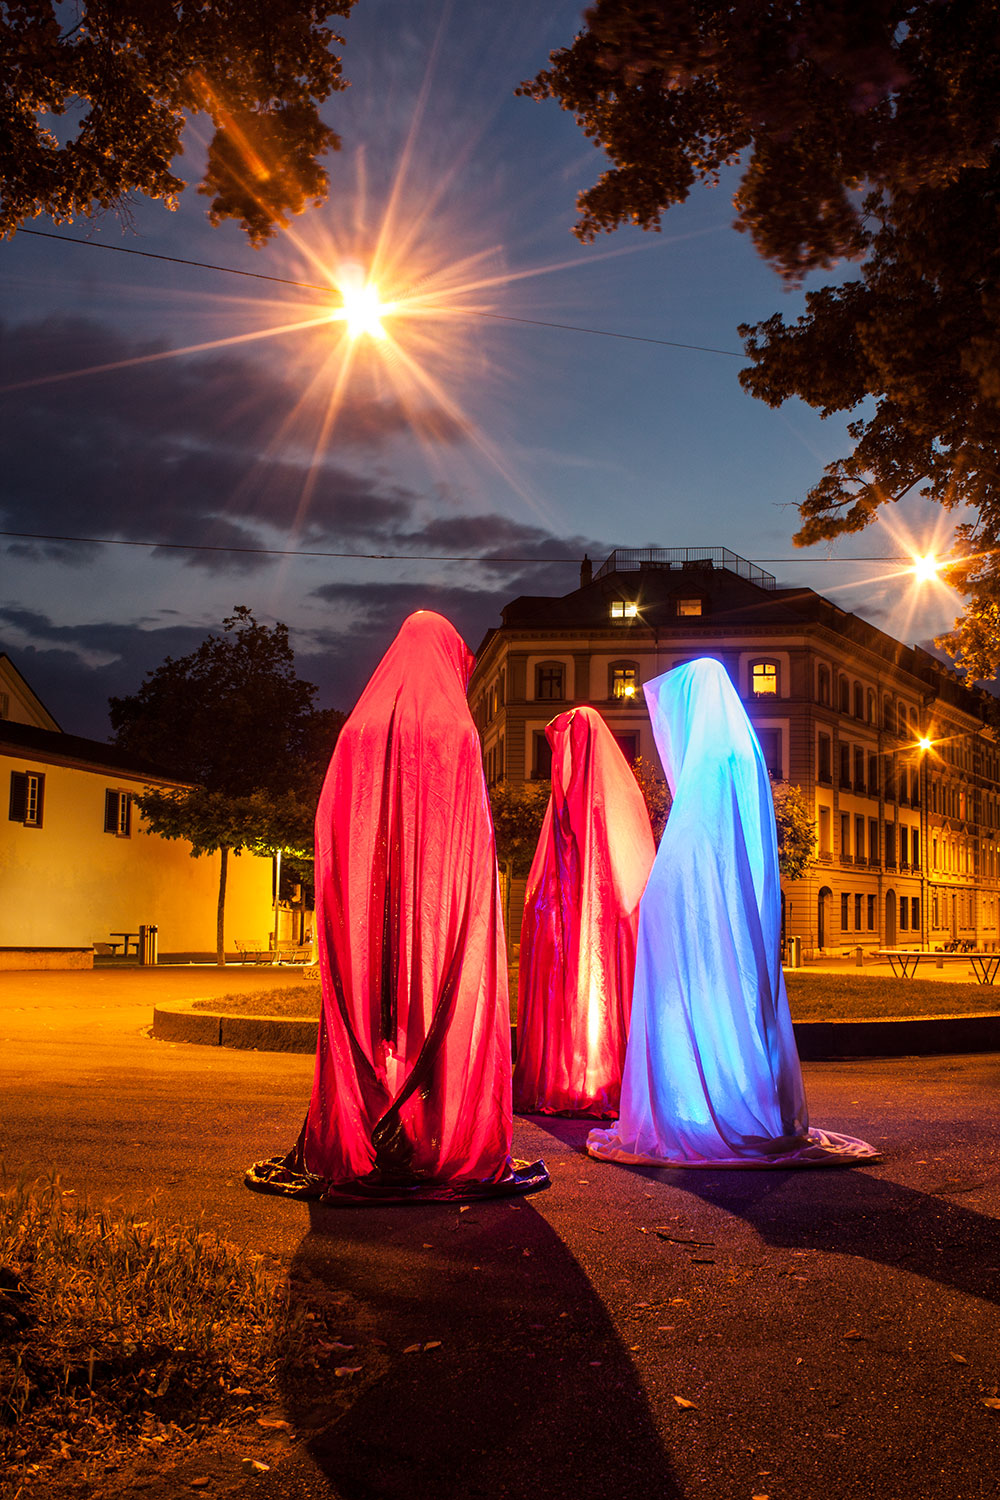 highlights-public-artbasel-scope-art-show-guardians-of-time-manfred-kielnhofer-steinreich-contemporary-art-sculpture-tour-art-parcours-1492